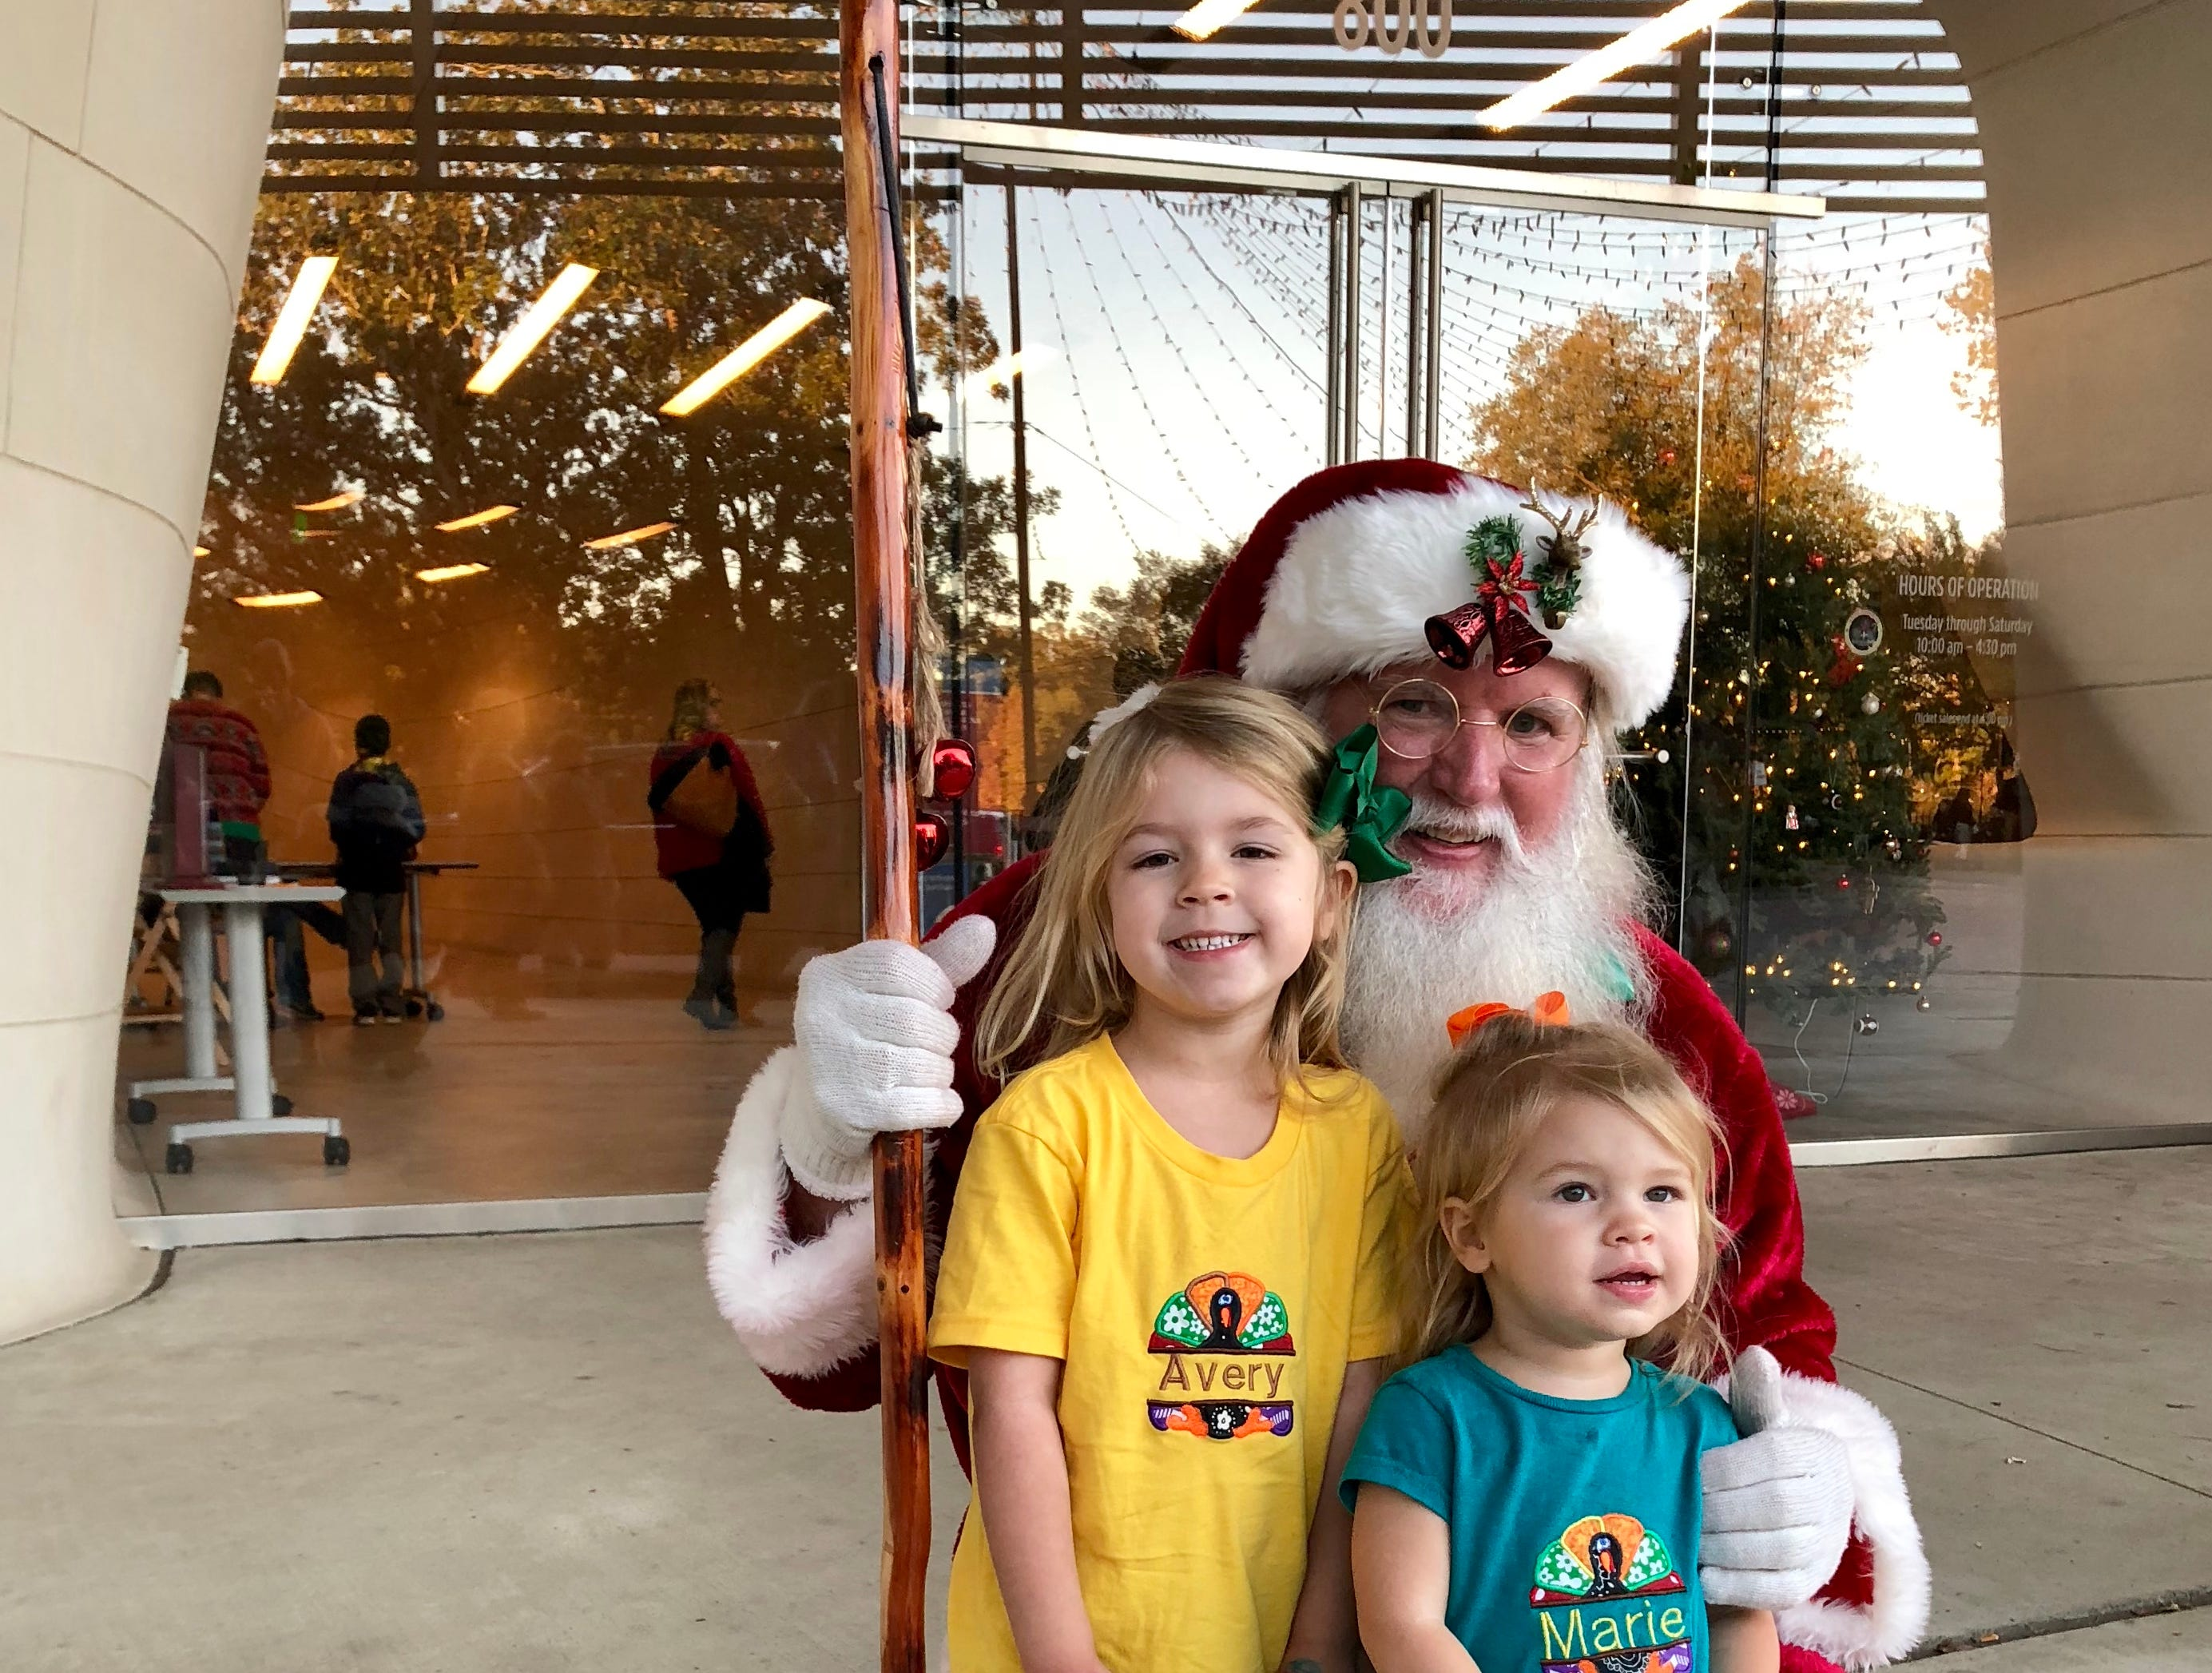 From mid-November to early January Natchitoches becomes the city of lights with hundreds of thousands Christmas lights throughout the historic downtown. So, of course, Santa Claus comes to visit.